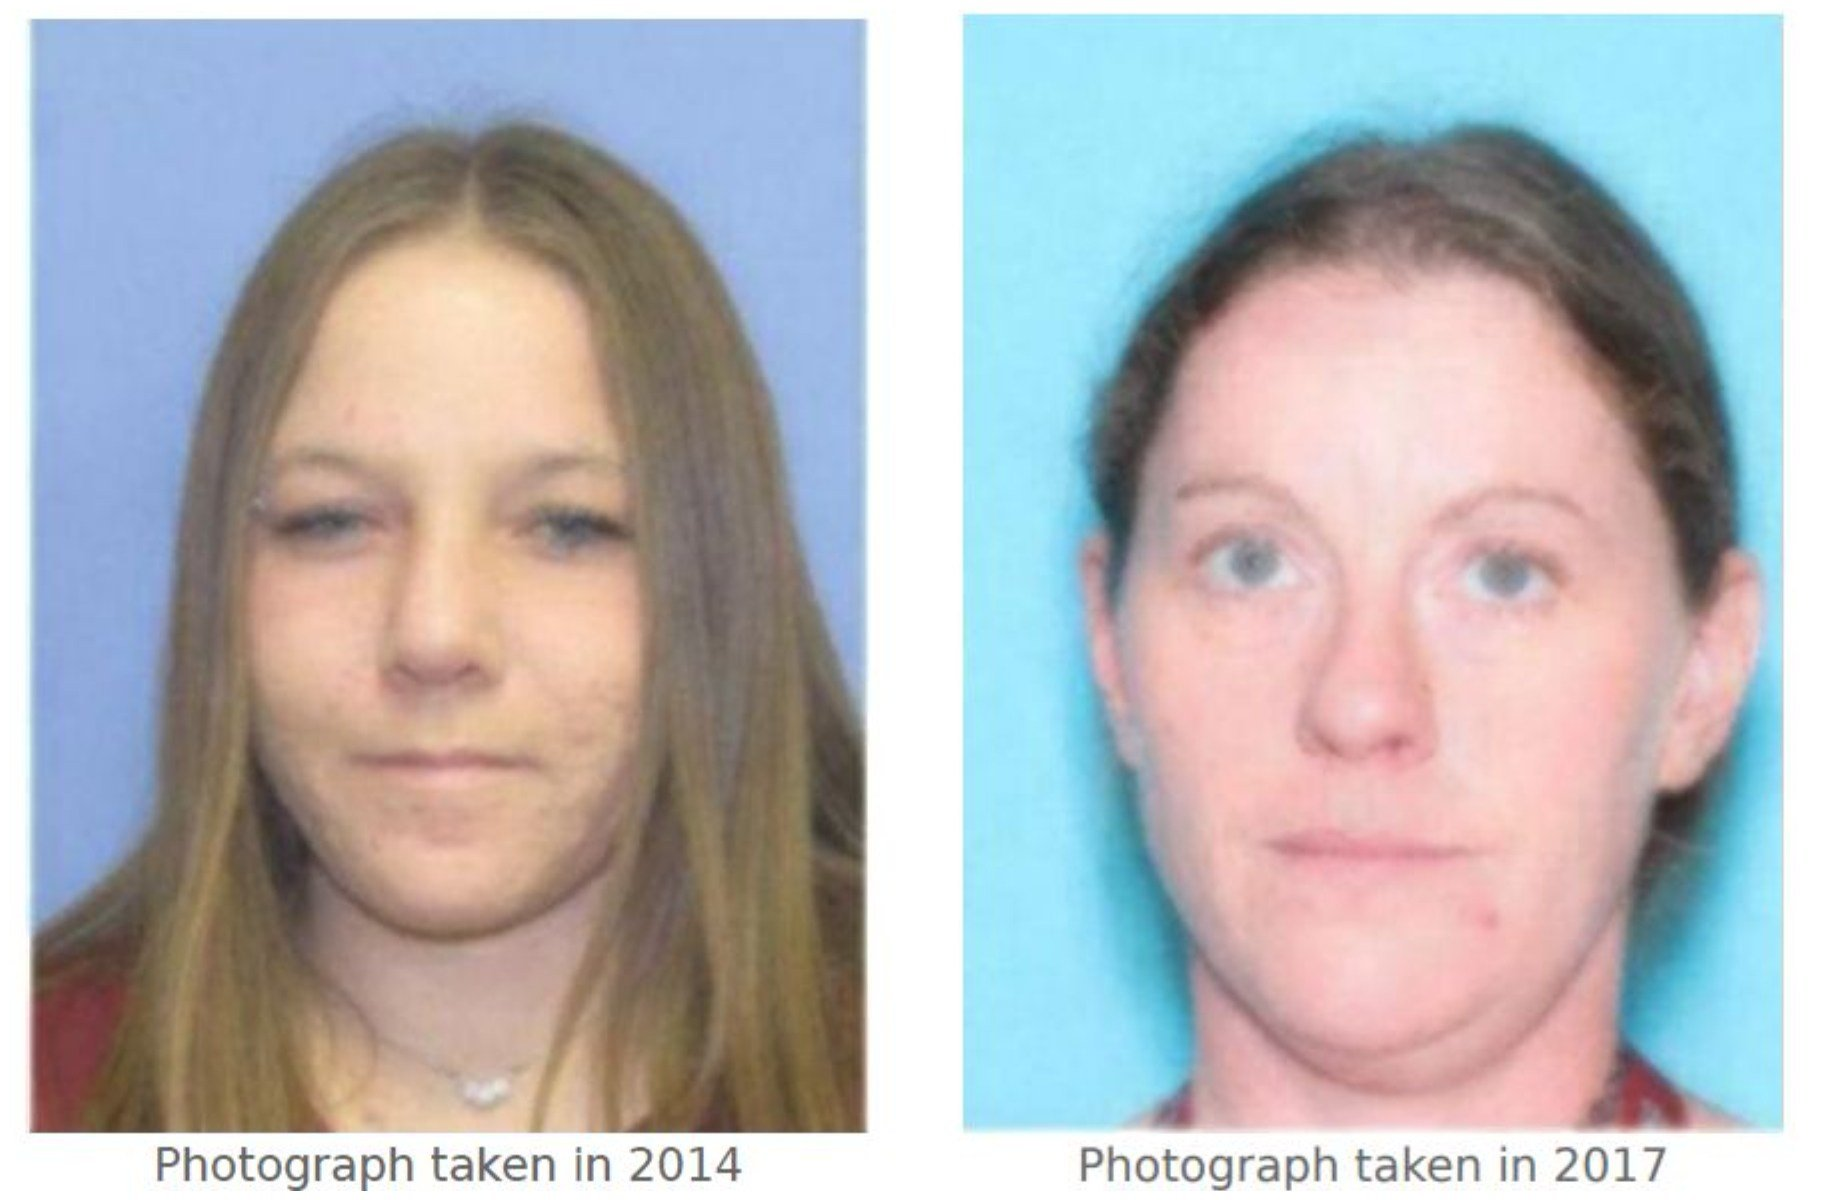 The FBI says it is searching for Jamie Milsten and Melissa Shurtliff